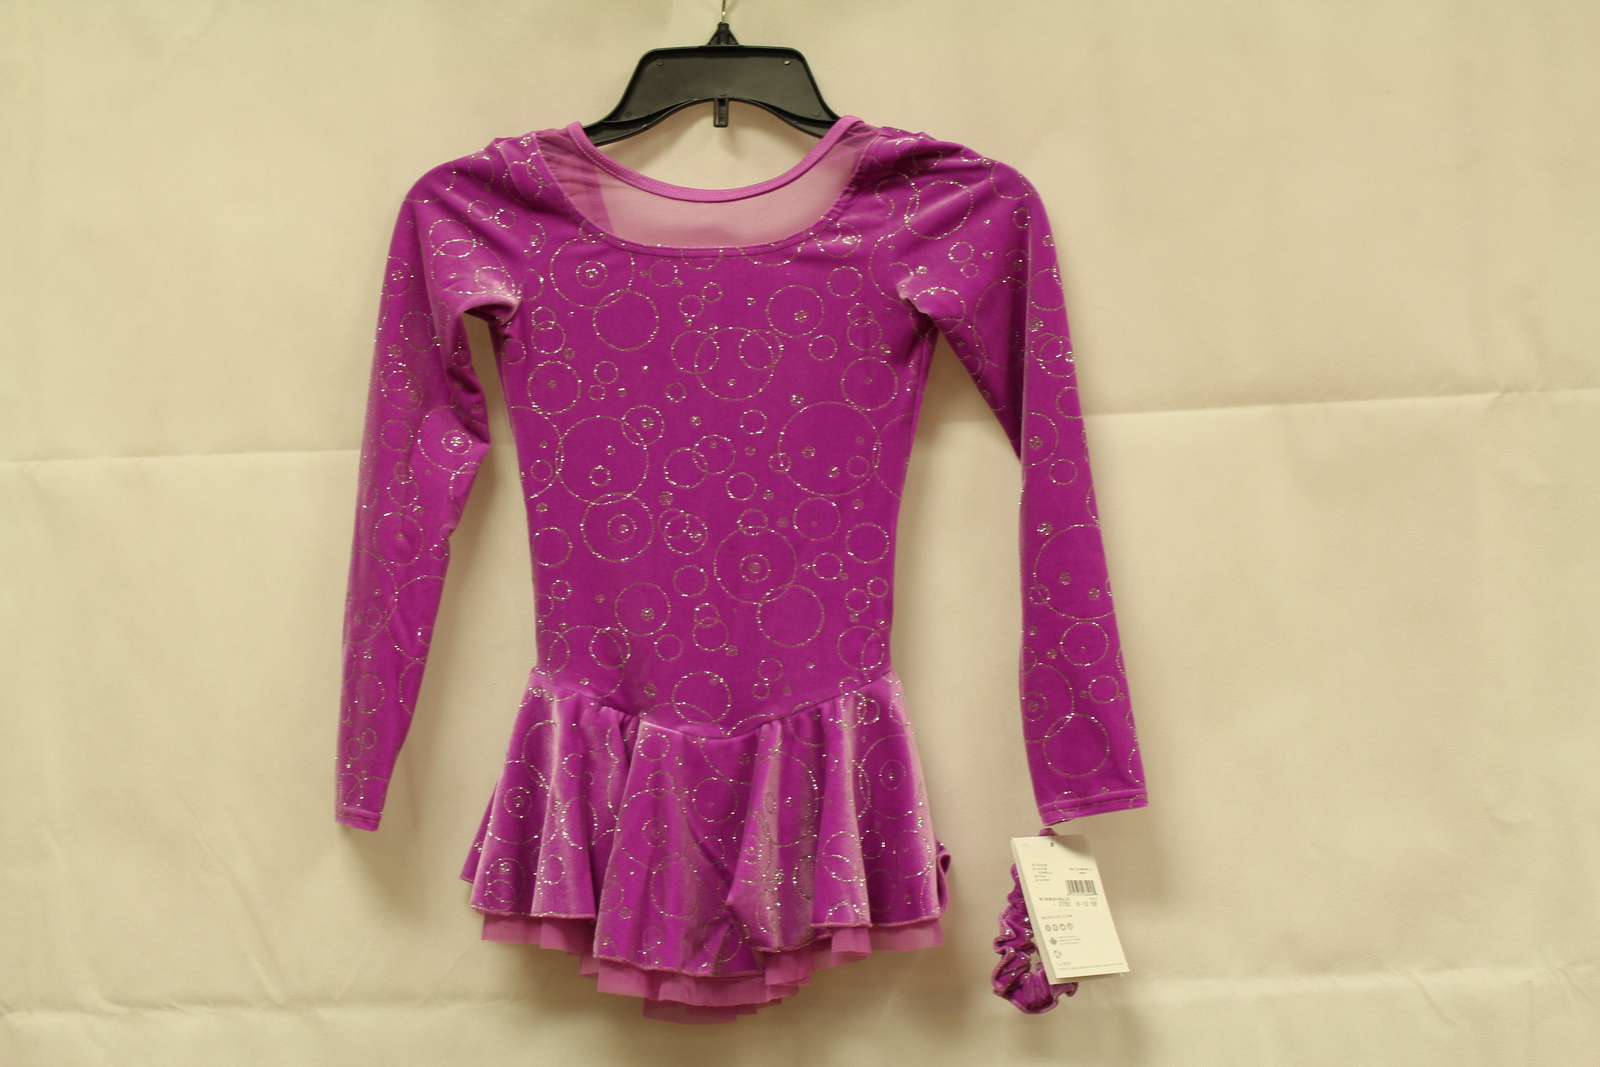 Primary image for Mondor Model 2762 Girls Skating Dress - Buubles Size Child 8-10